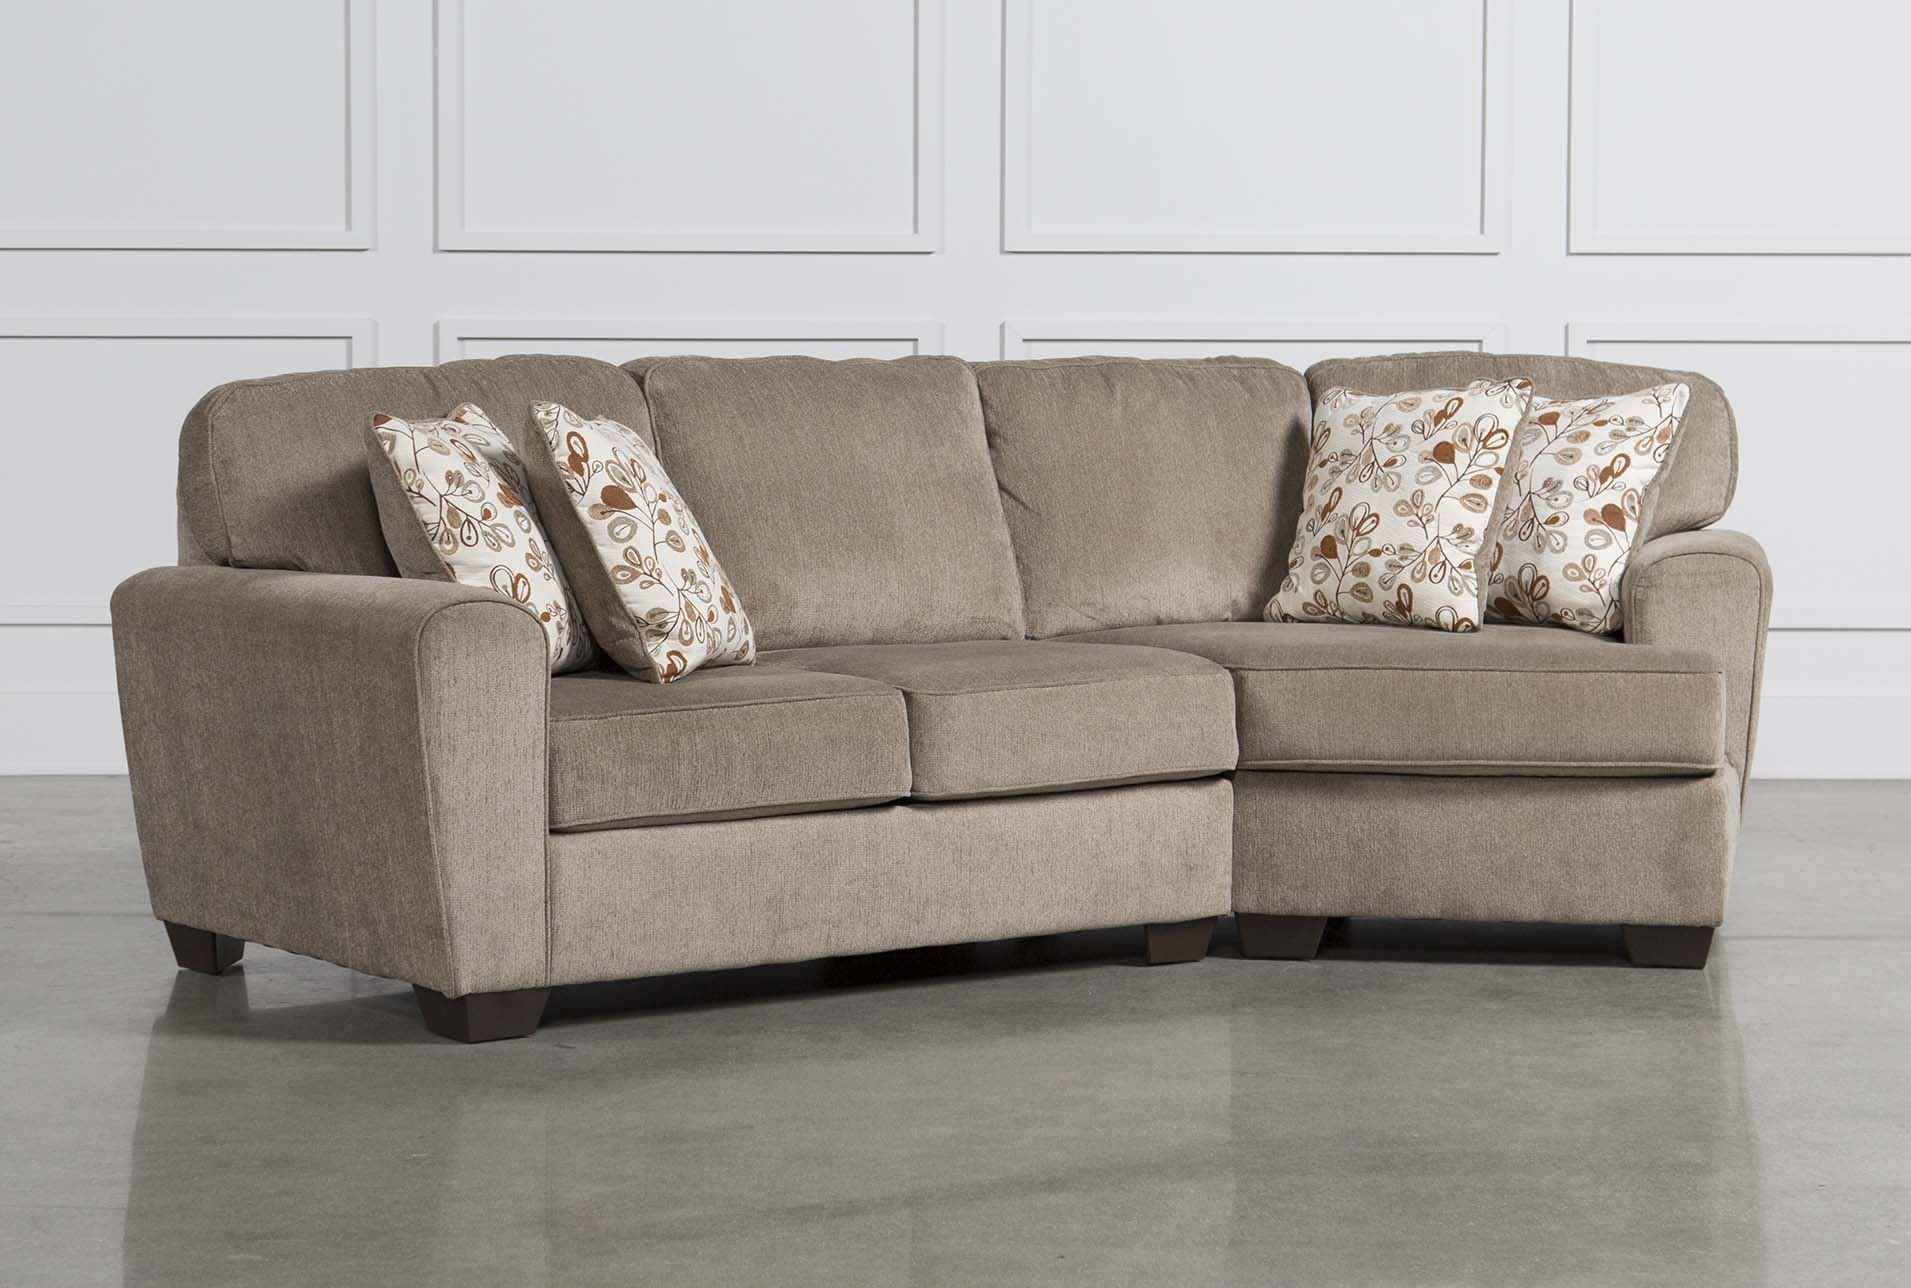 storagesmall reclining gorgeous sectional astonishing with sleeper grey sofa small beautiful additional chaise storage bedsmall smallnal